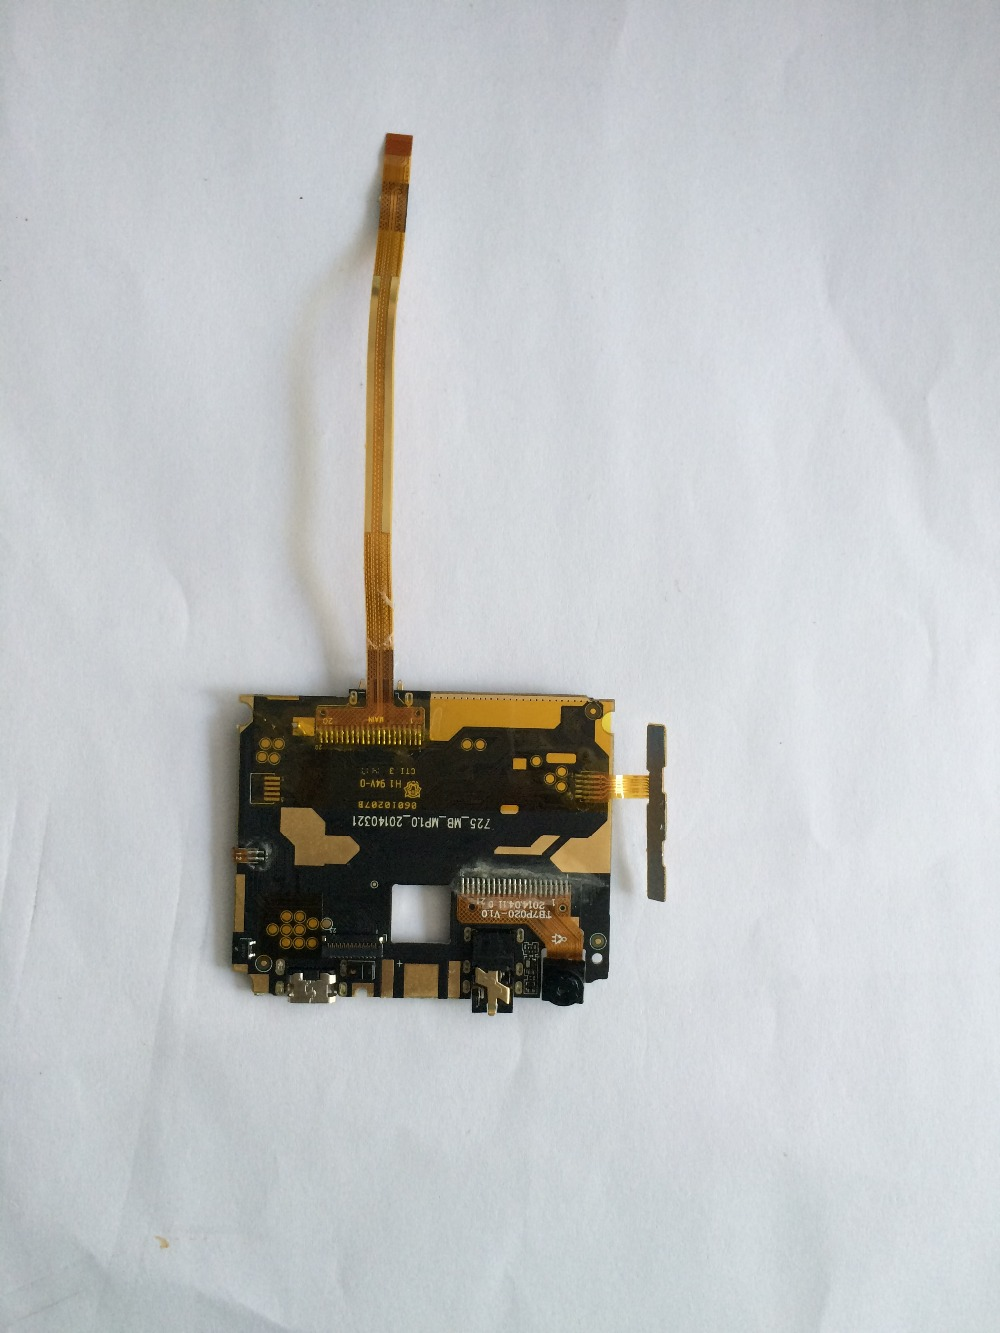 Used mainboard 512MB RAM+4G ROM Motherboard For Smartphone M-HORSE S72, OS Android 4.2.2, Dual-core, 5.0 Free shipping